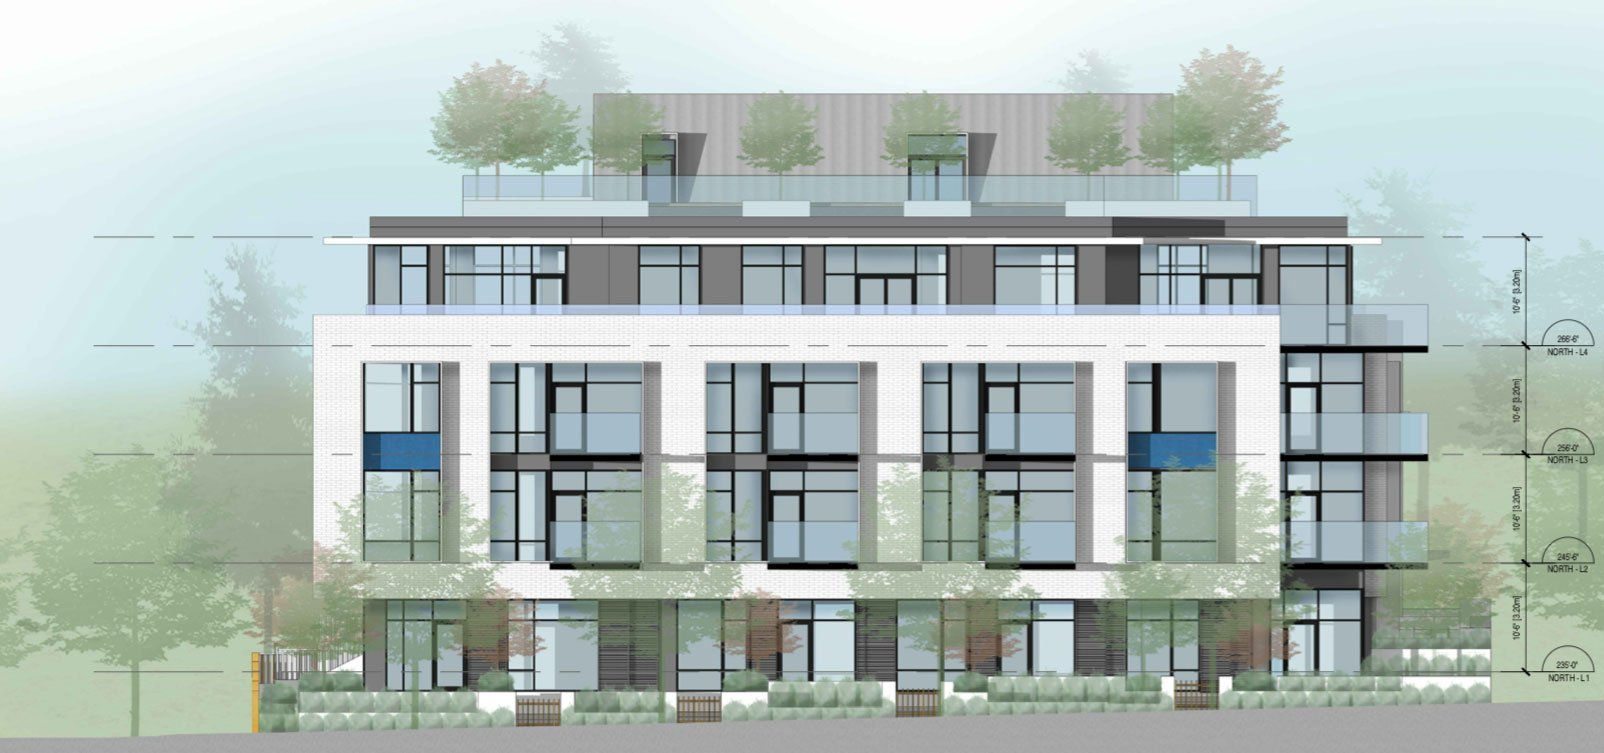 36-unit condo building slated for West King Edward and Ash